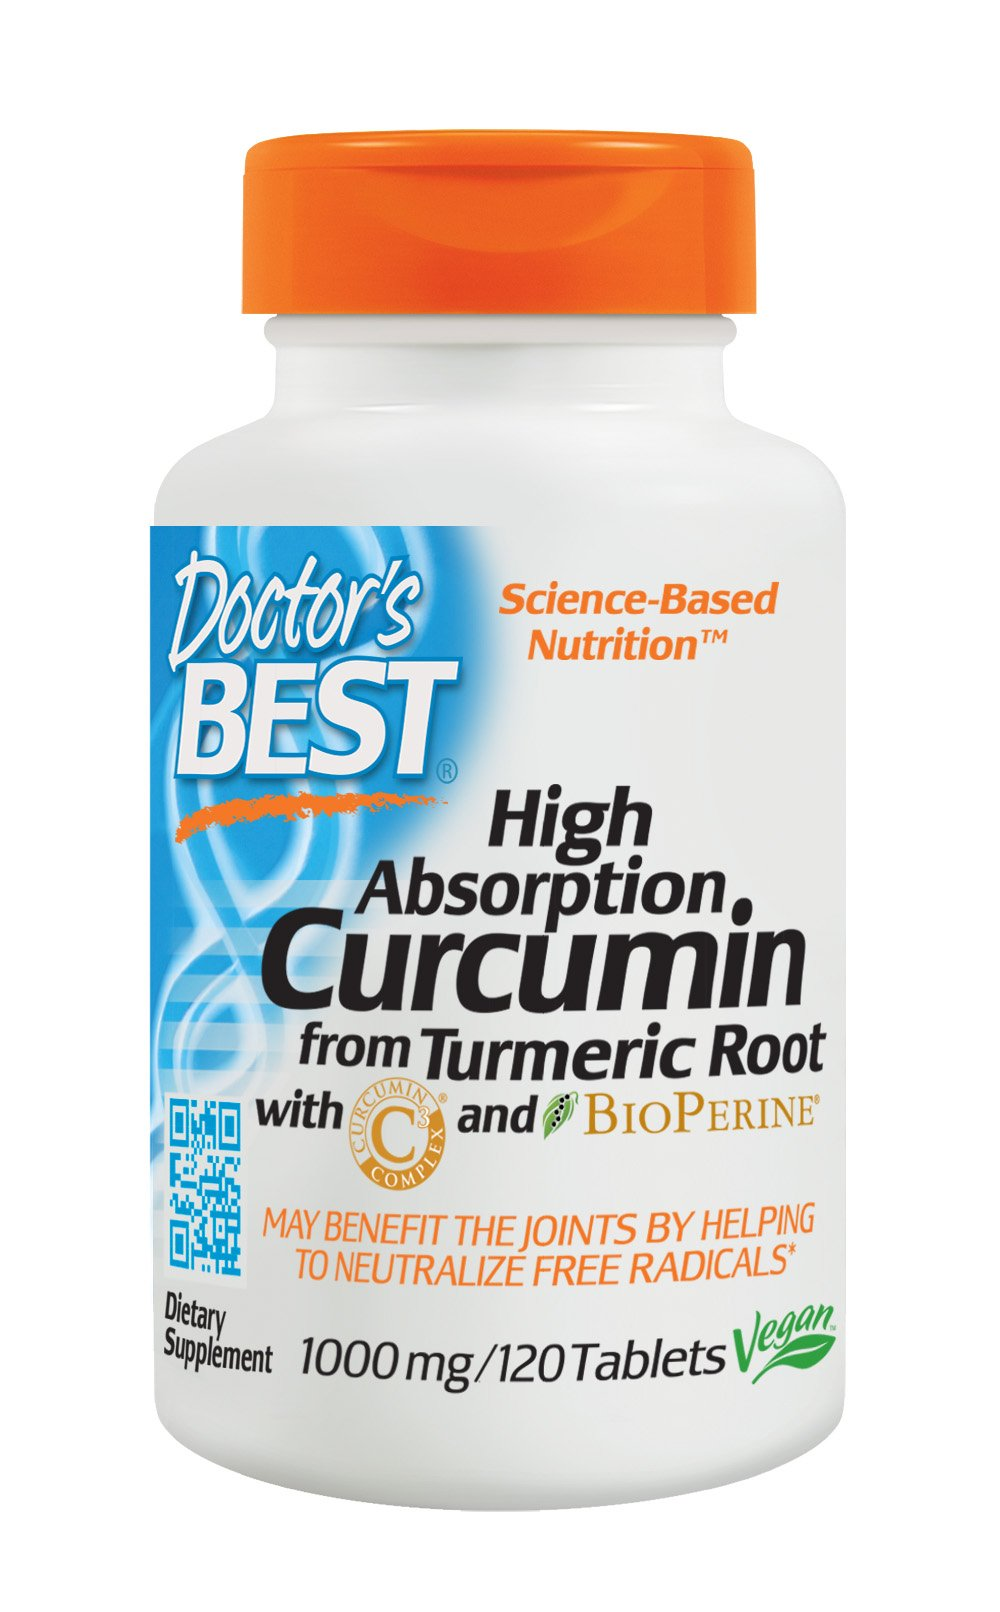 Doctor's Best Curcumin From Turmeric Root  with C3 Complex & BioPerine, Non-GMO, Gluten Free, Soy Free, Joint Support, 1000 mg, 120 Tablets